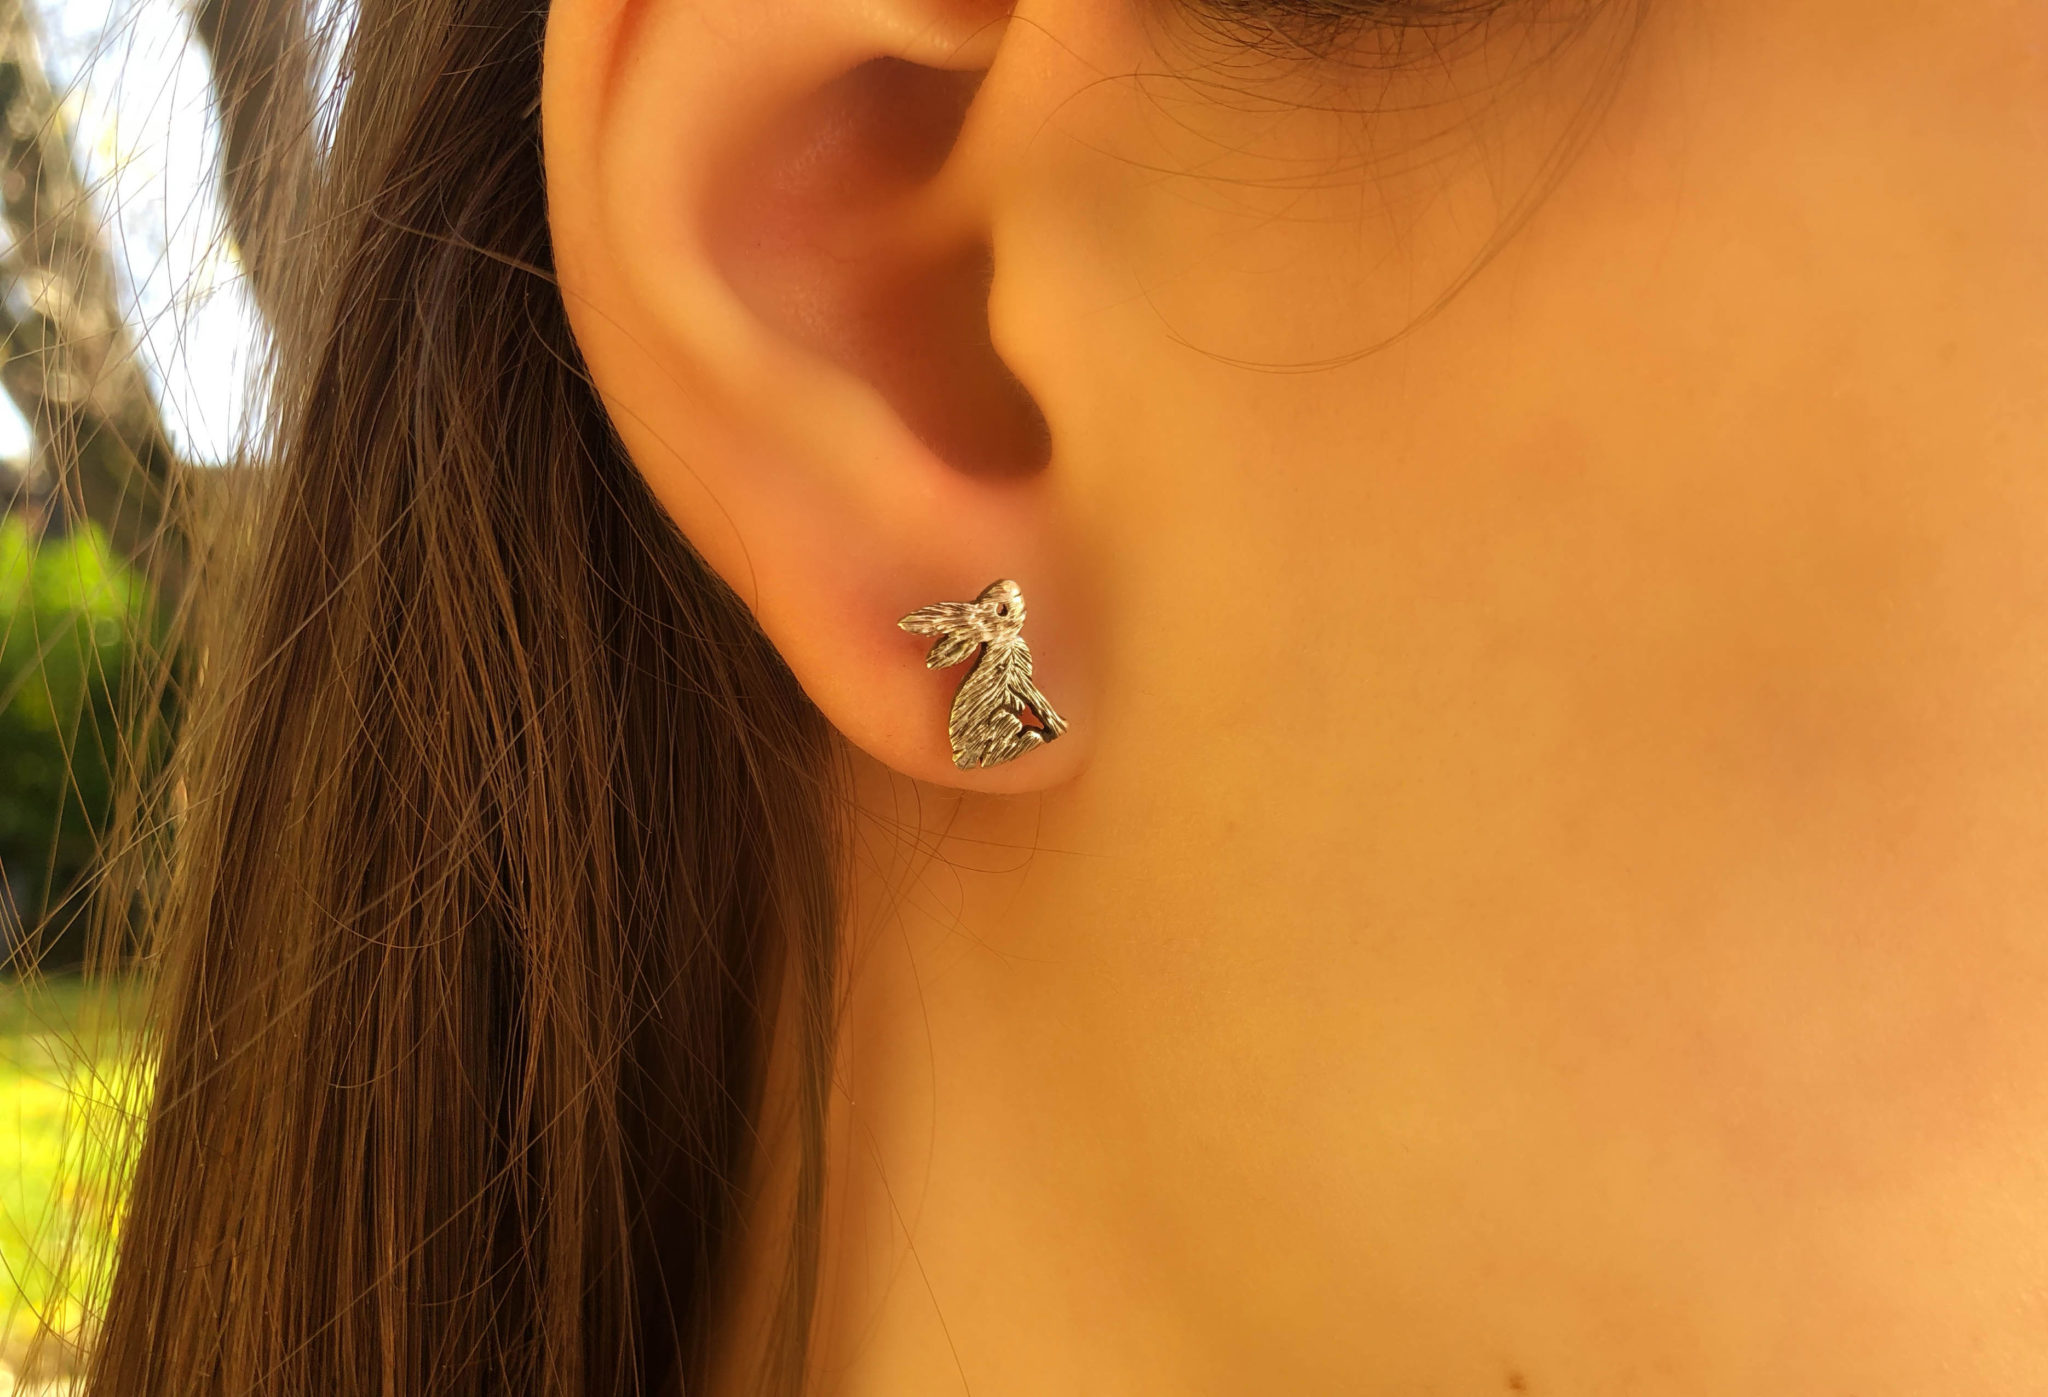 Moon gazing hare earrings - handmade and recycled sterling silver shilling coin.